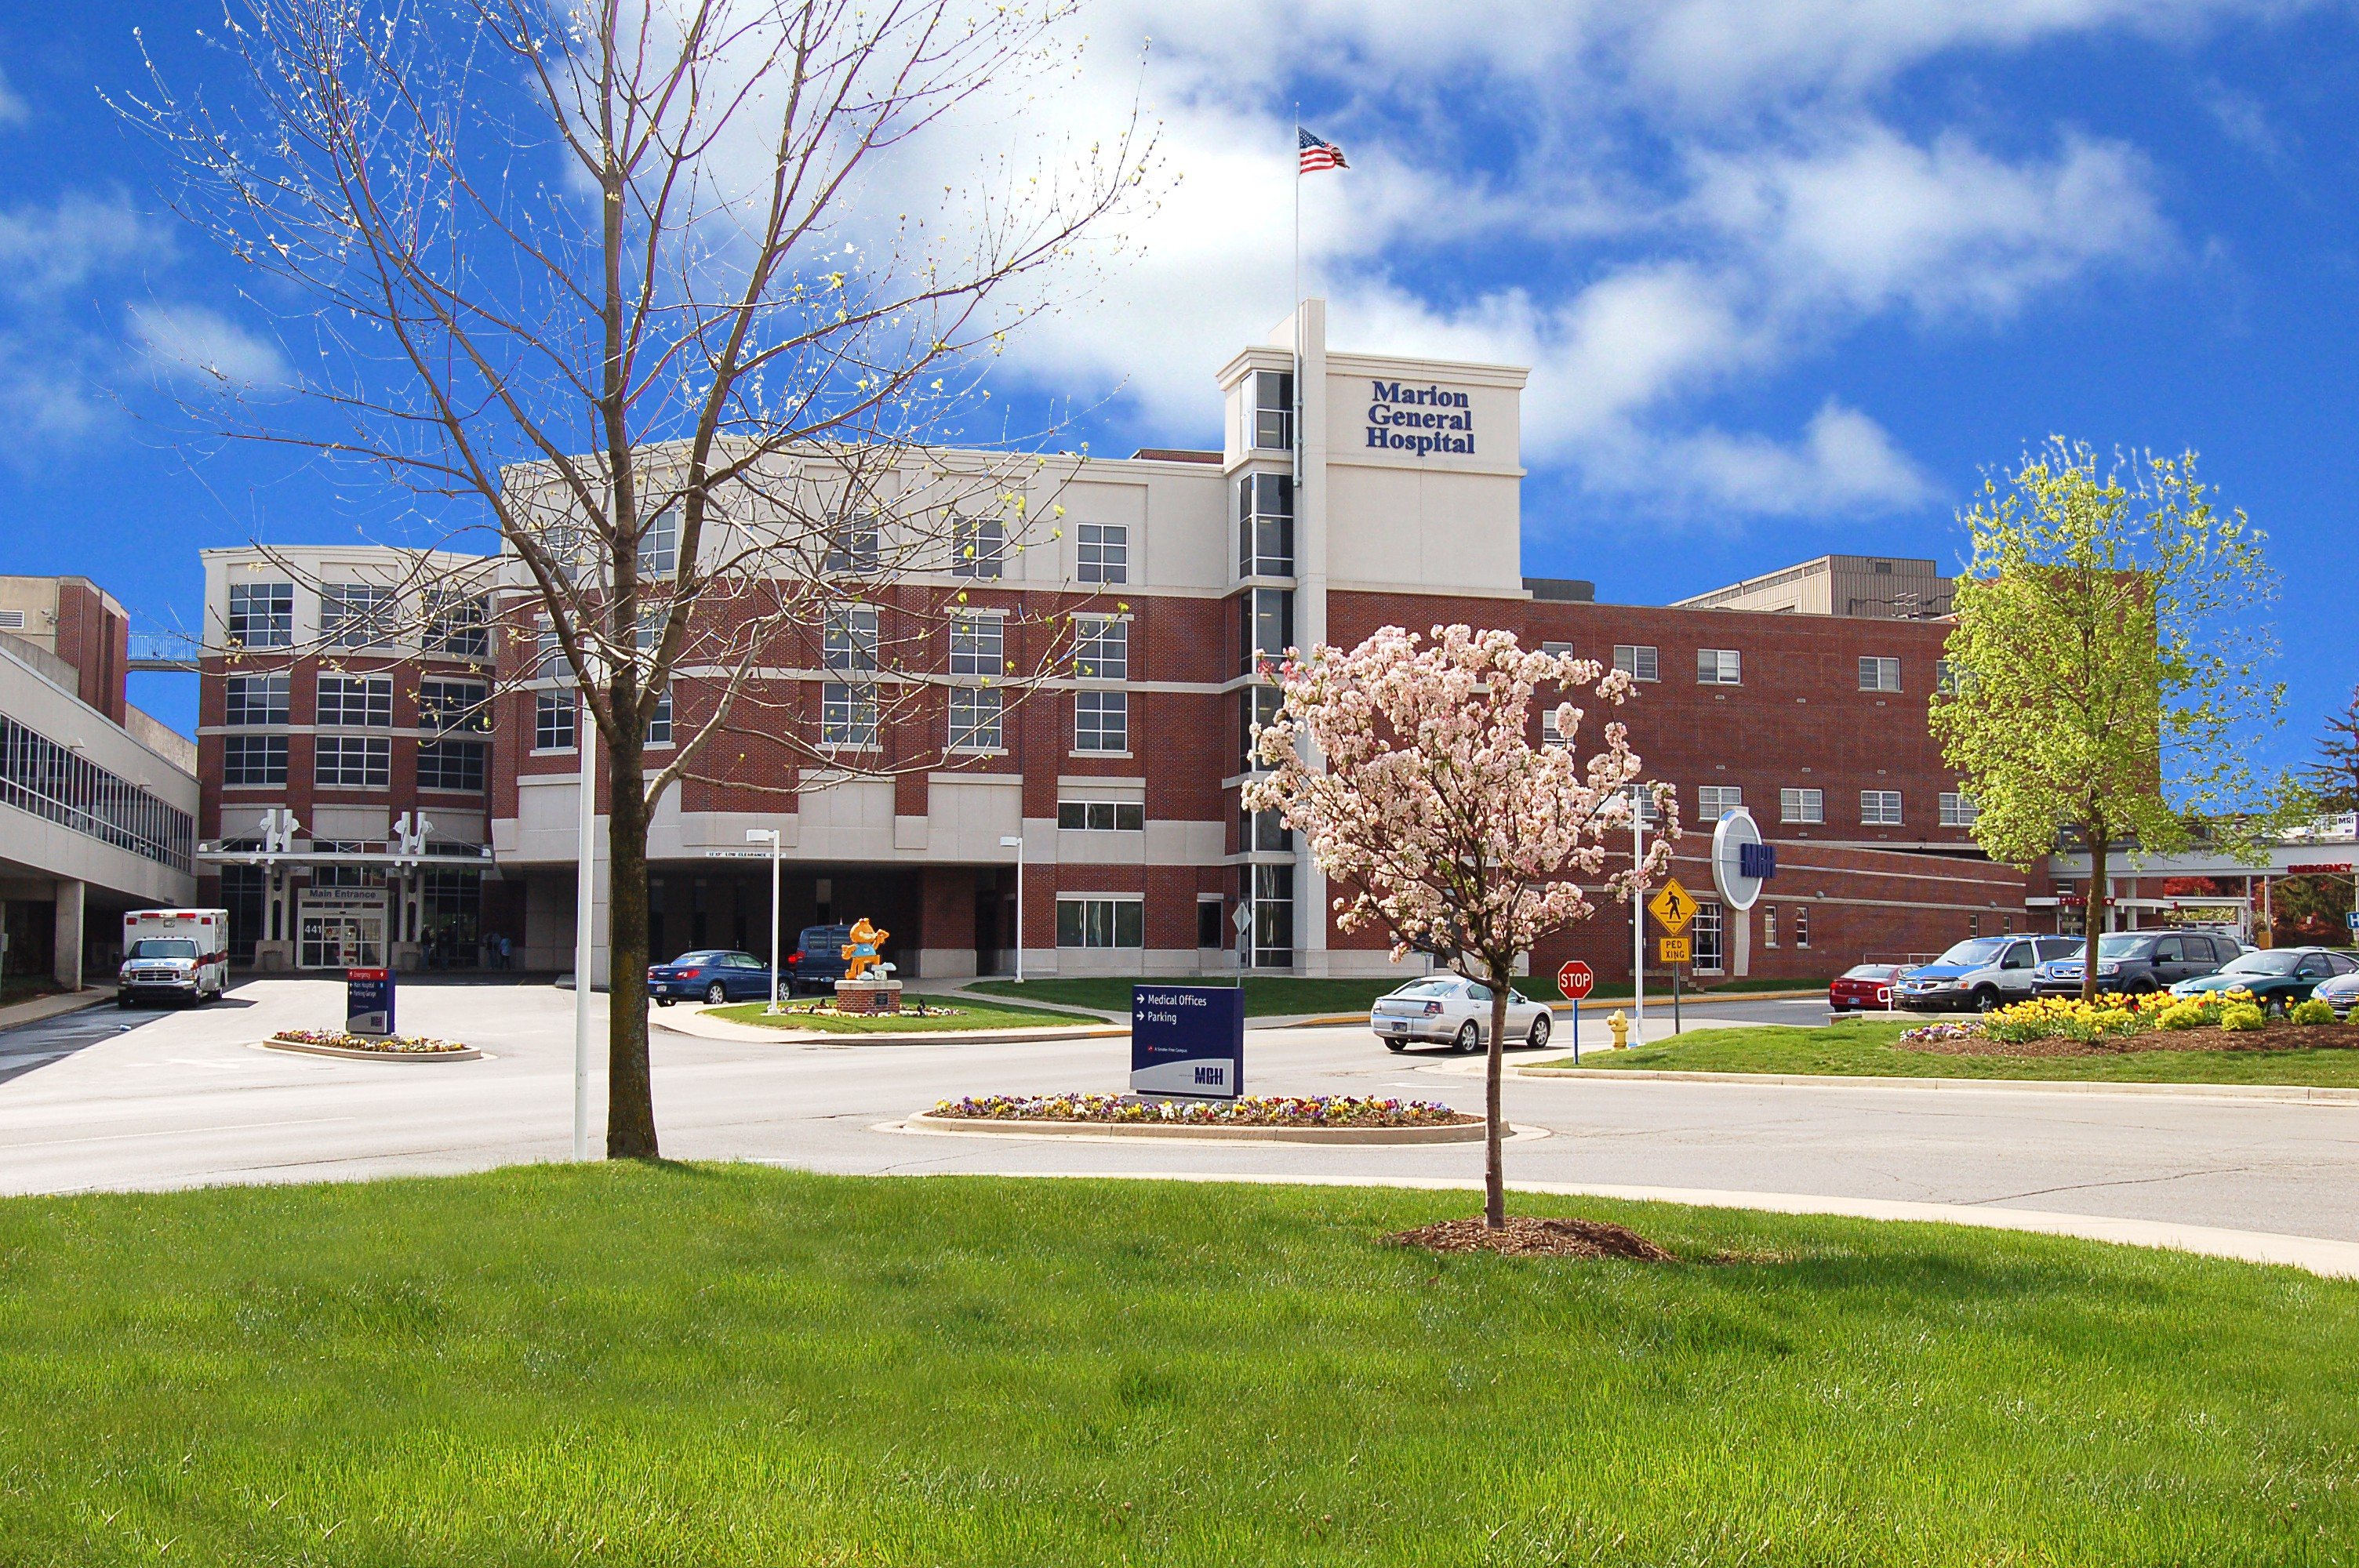 Marion General Hospital | LinkedIn